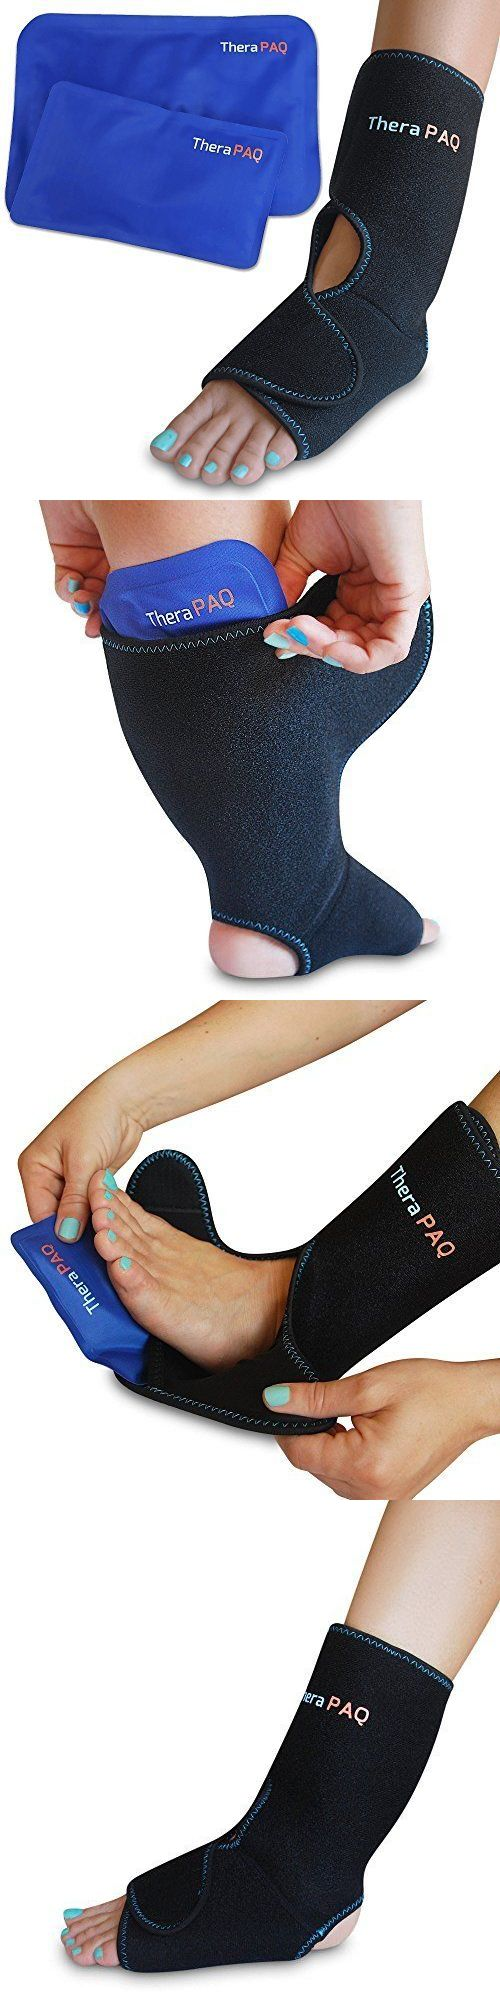 Cold and Hot Packs and Wraps: Foot Ankle Pain Relief Ice Wrap 2 Hot Cold Gel Pack Adjustable Velcro Breathable BUY IT NOW ONLY: $41.99